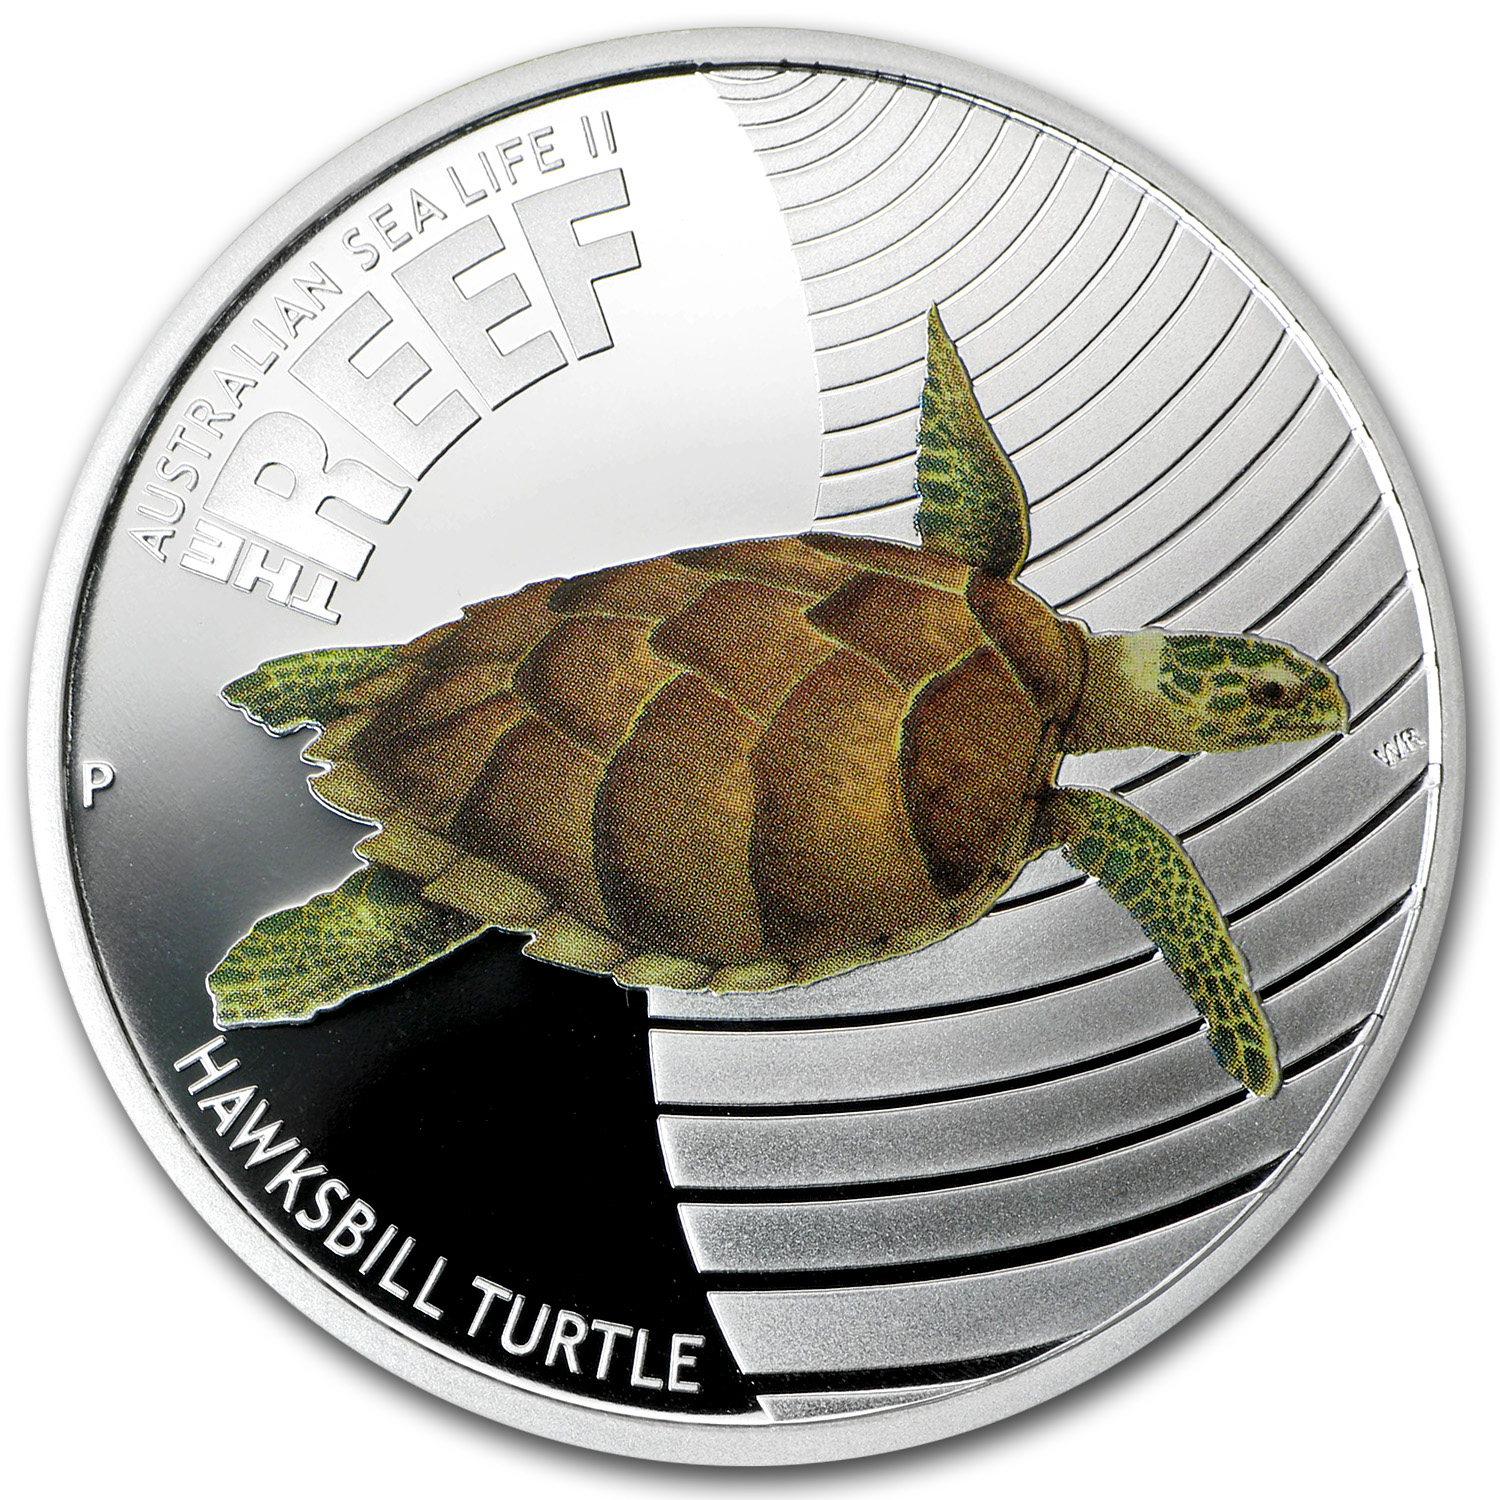 2011 1/2 oz Silver Australian Hawksbill Turtle Proof